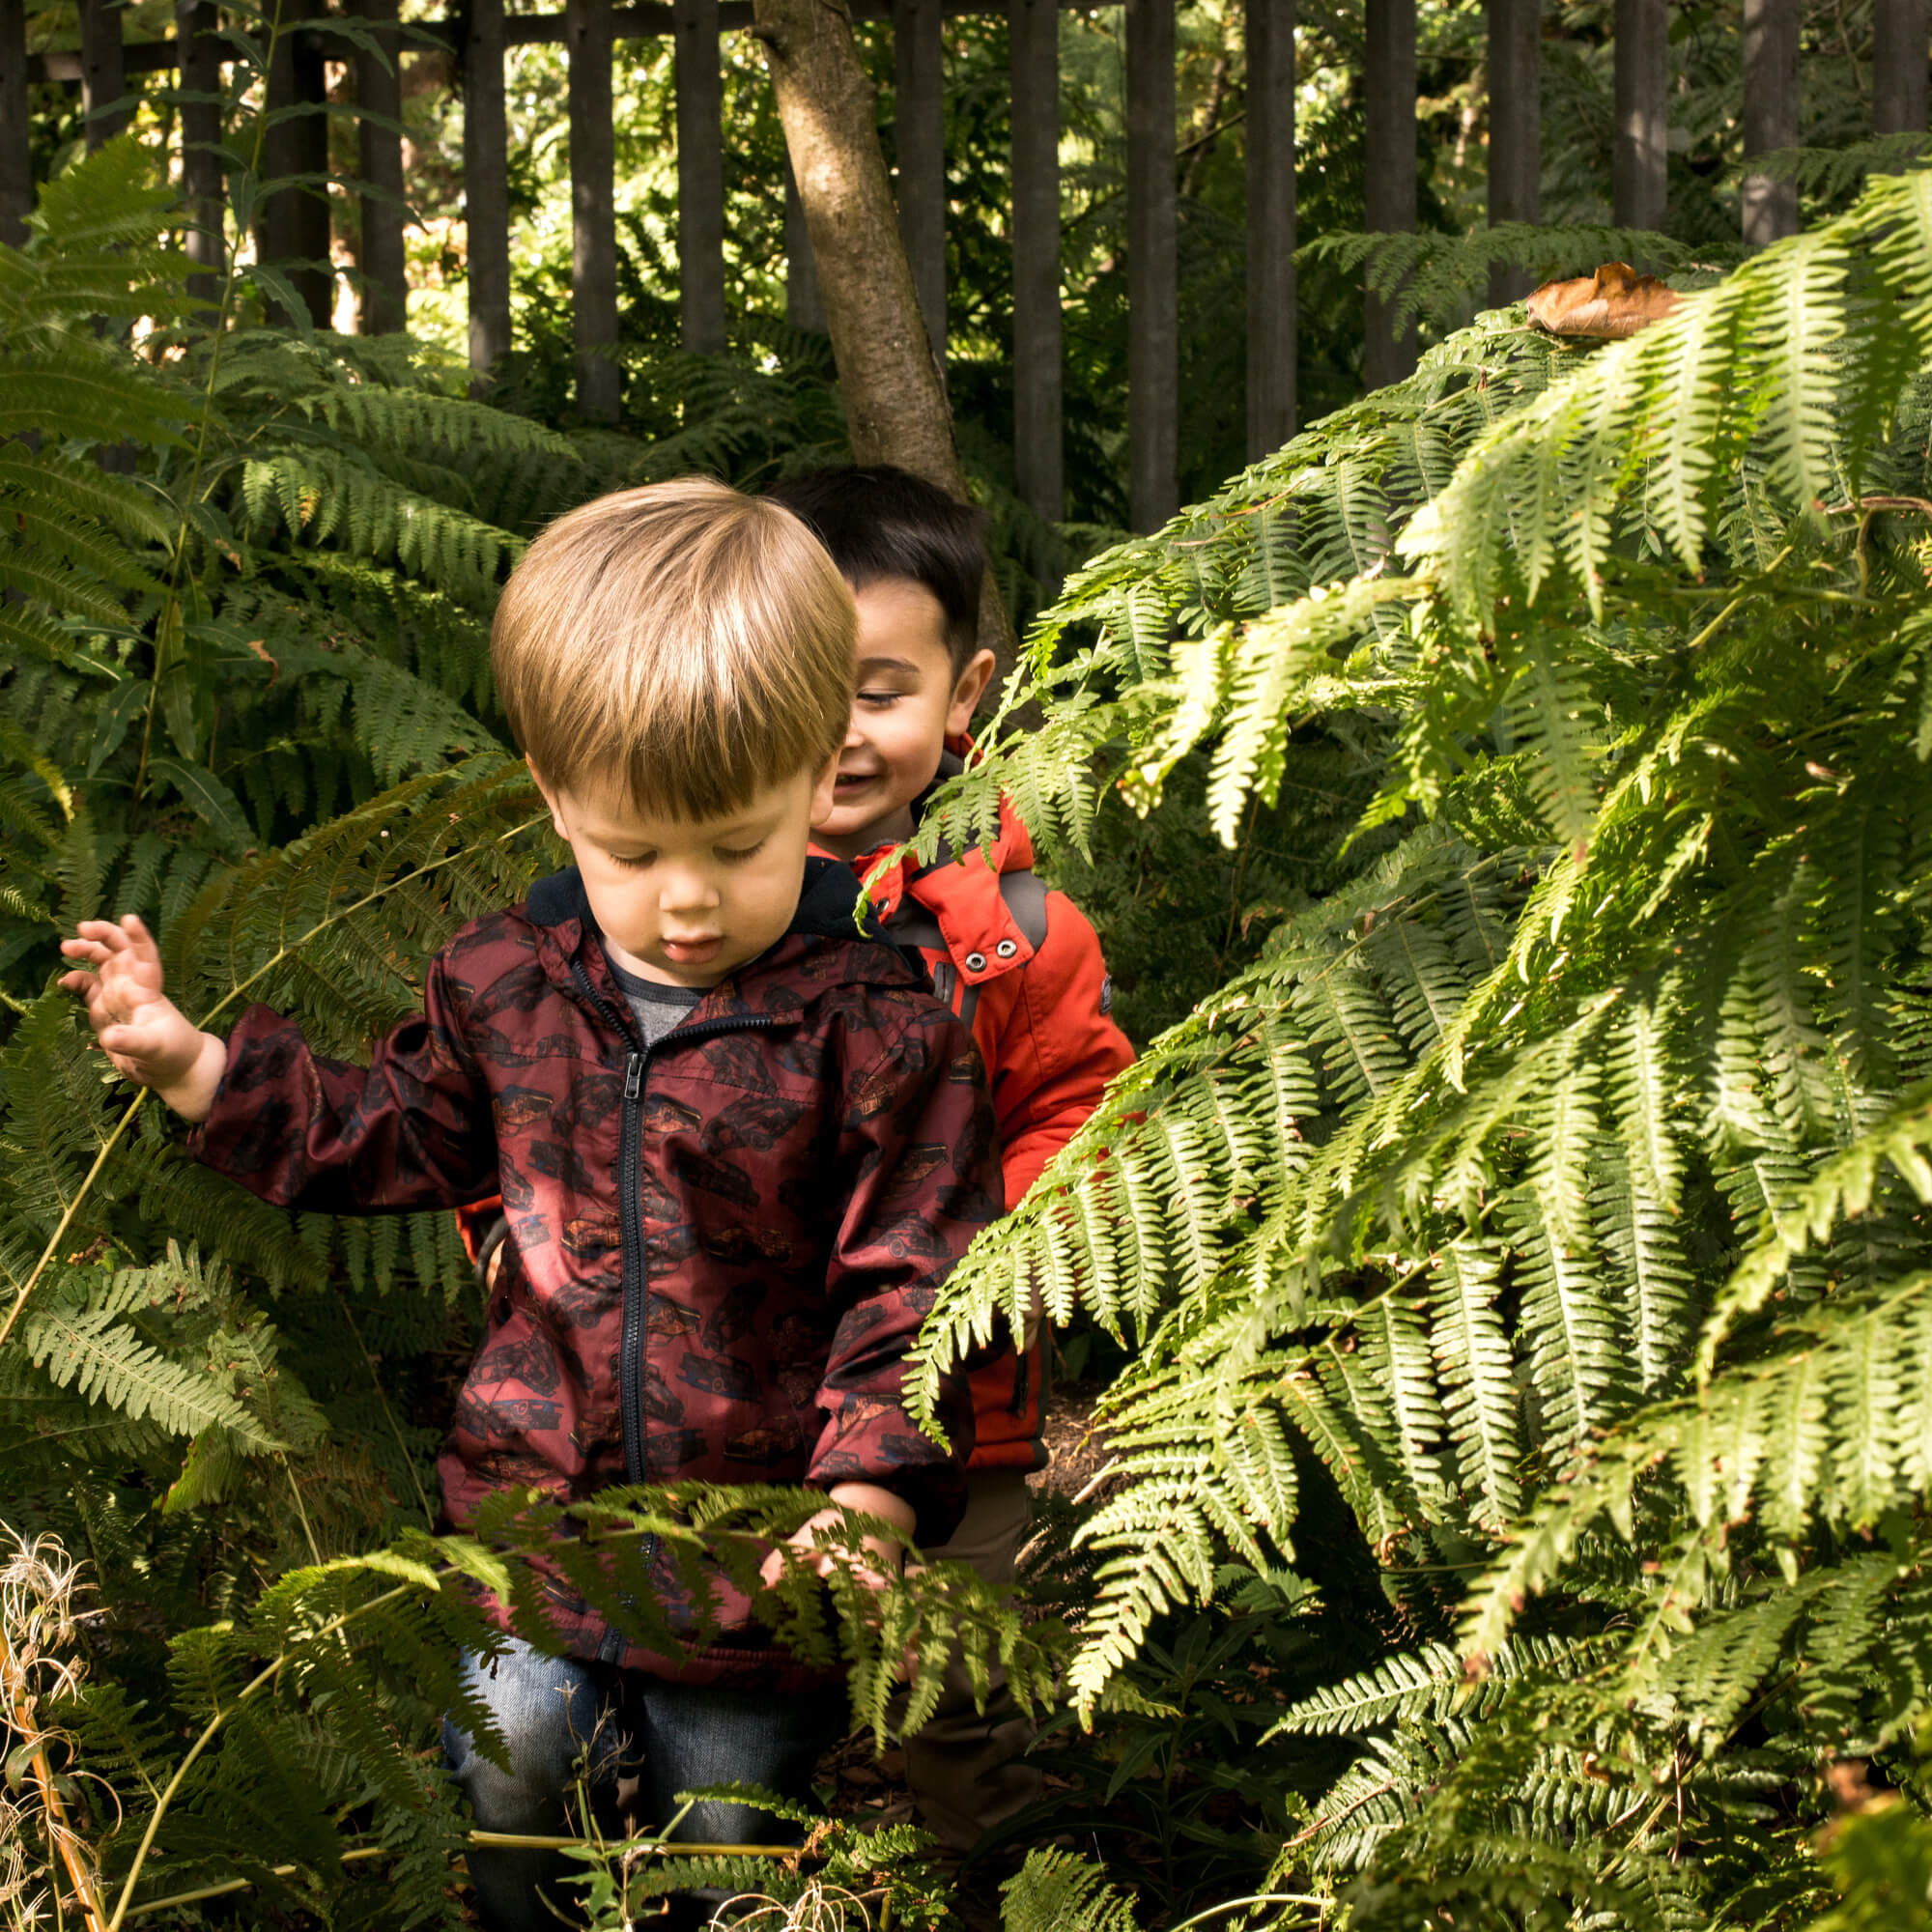 Children playing in a forest space